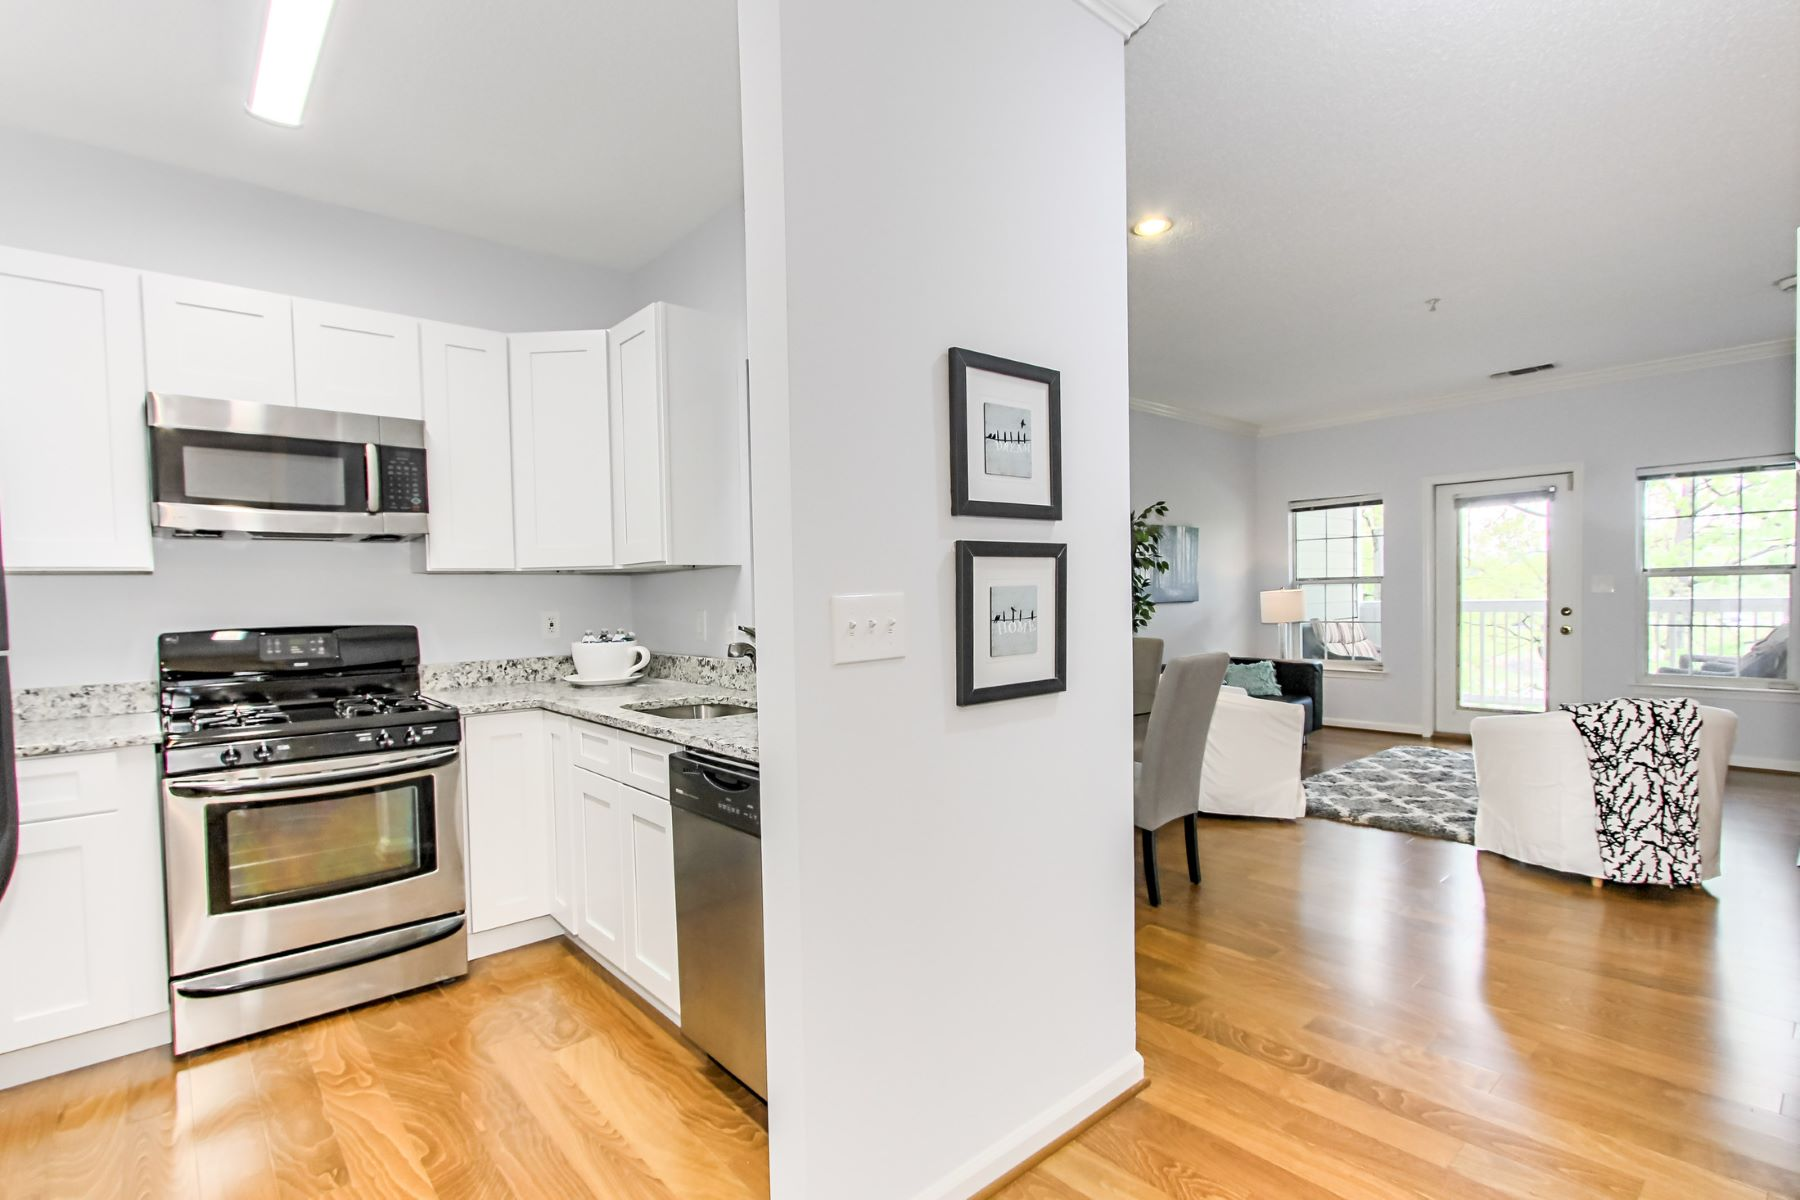 Appartement en copropriété pour l Vente à 1720 Lake Shore Crest Drive 24, Reston 1720 Lake Shore Crest Dr 24 Reston, Virginia 20190 États-Unis